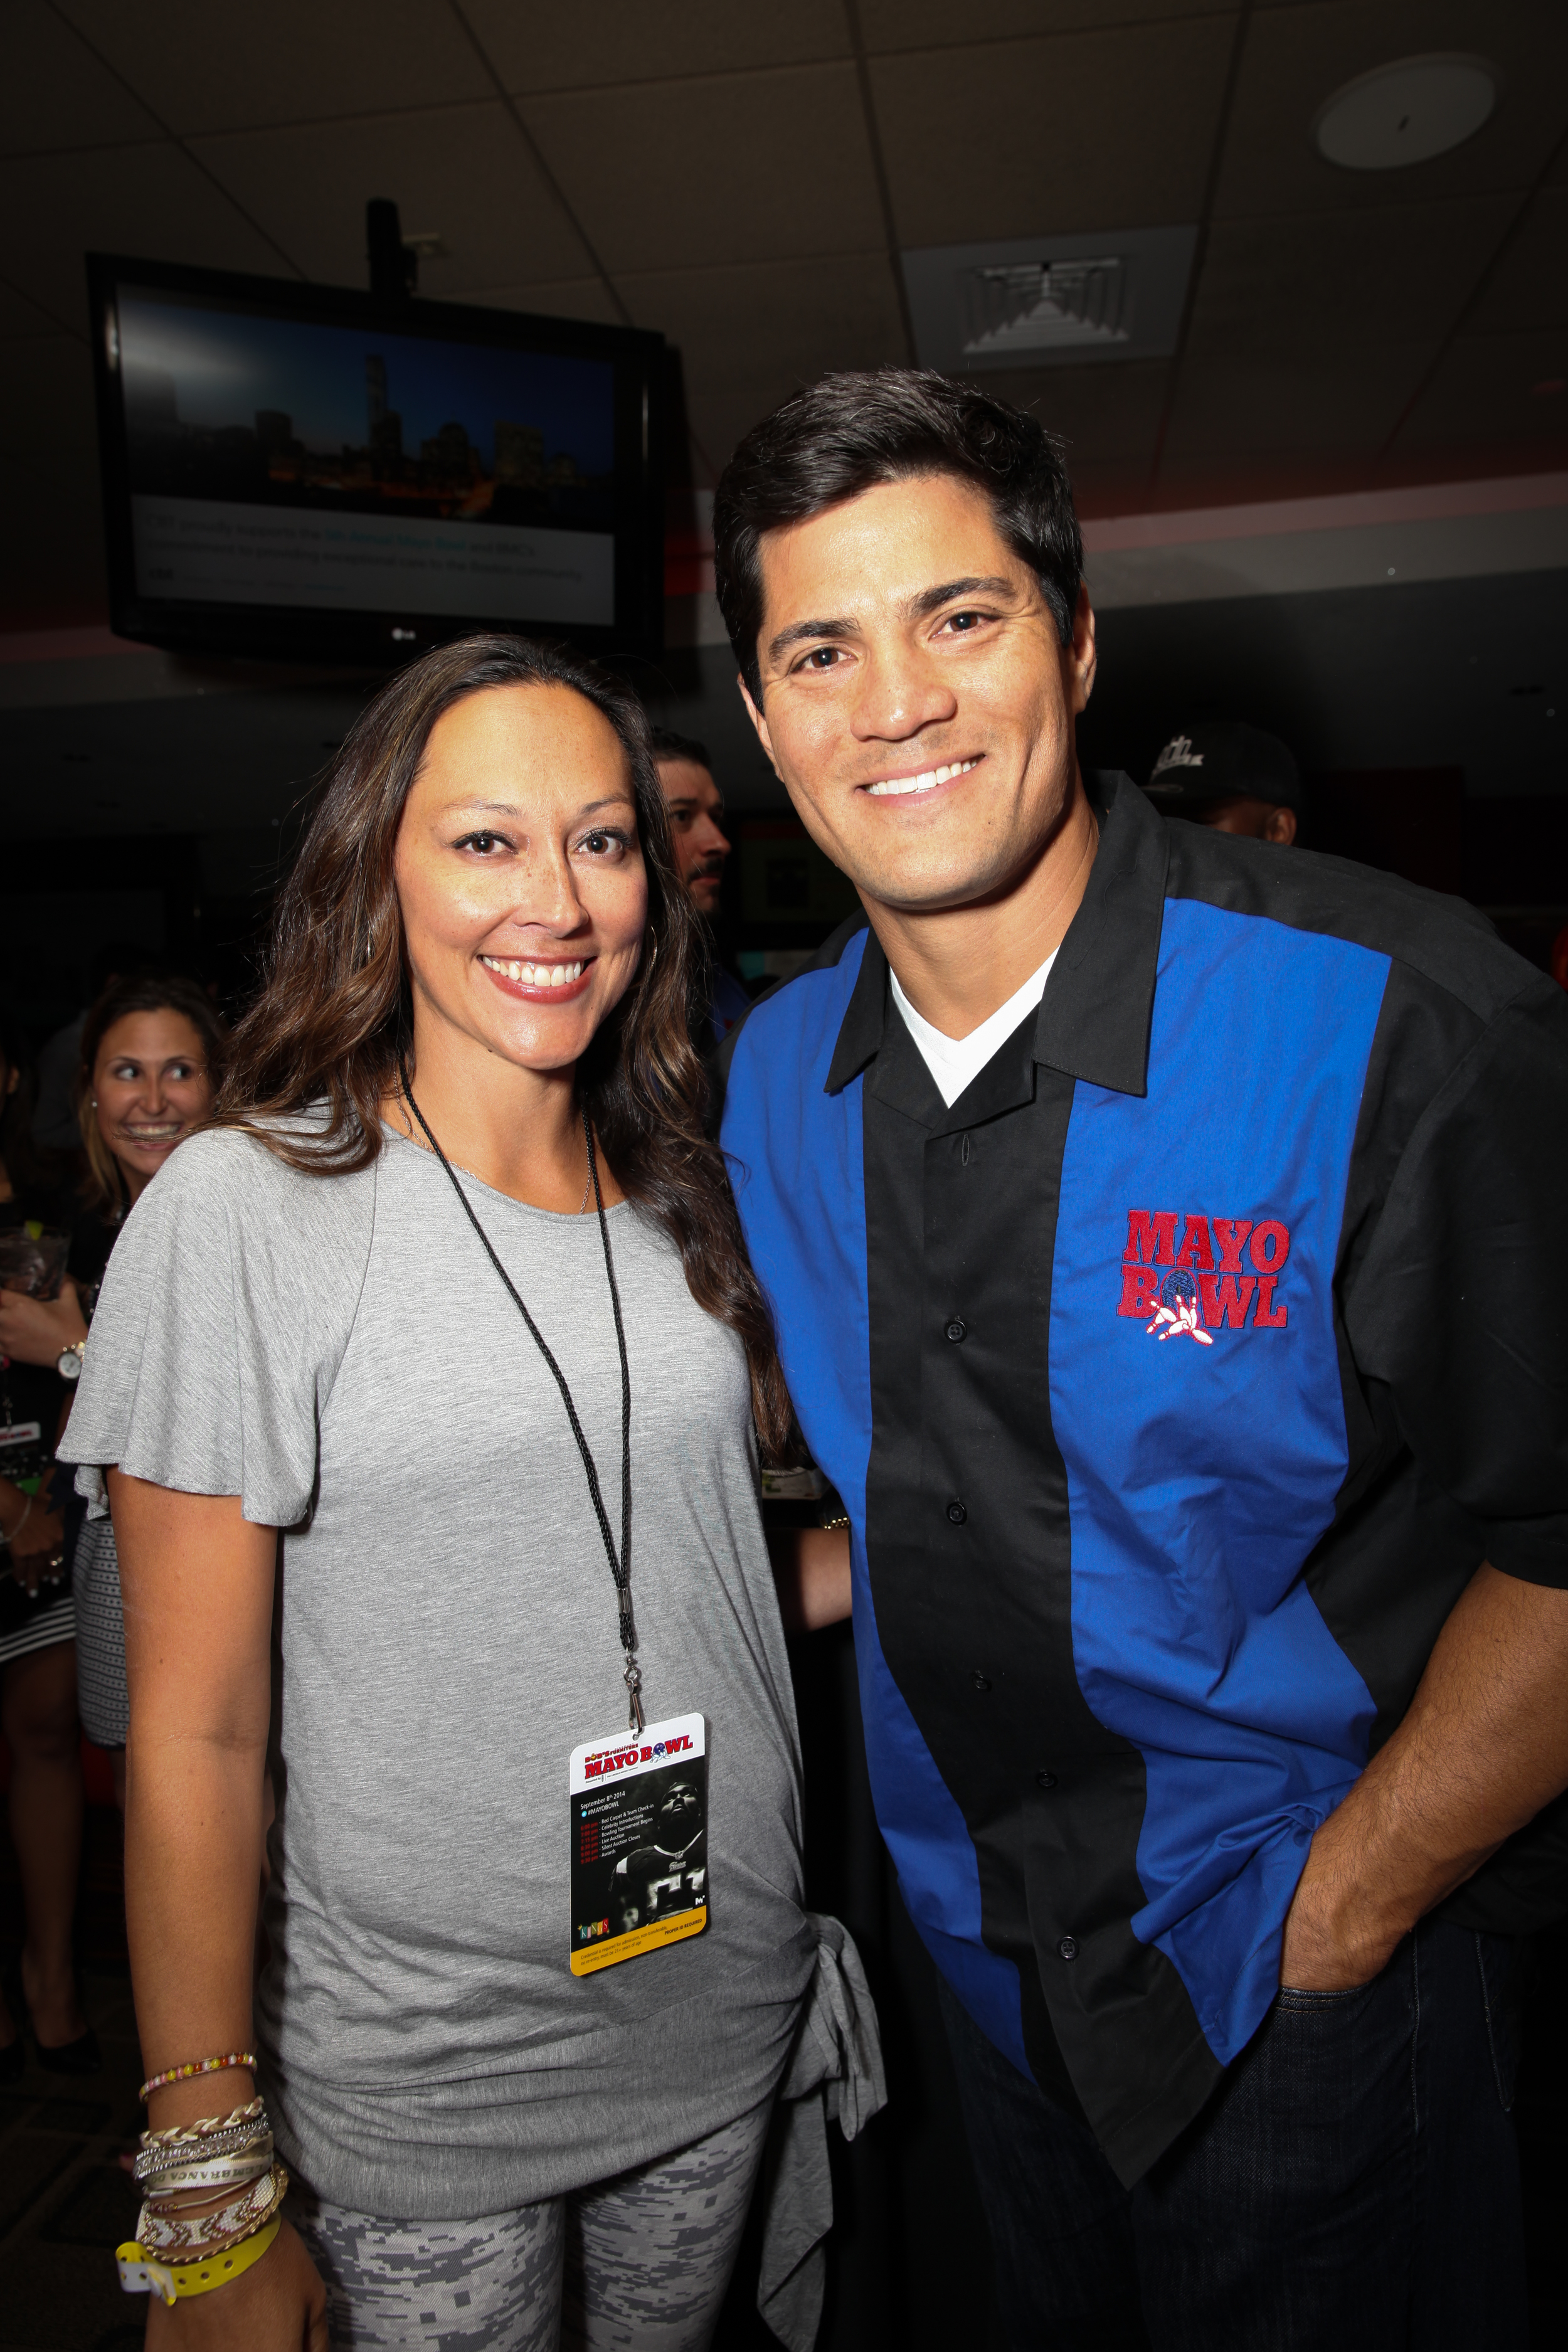 Jessica with her favorite, Tedy Bruschi